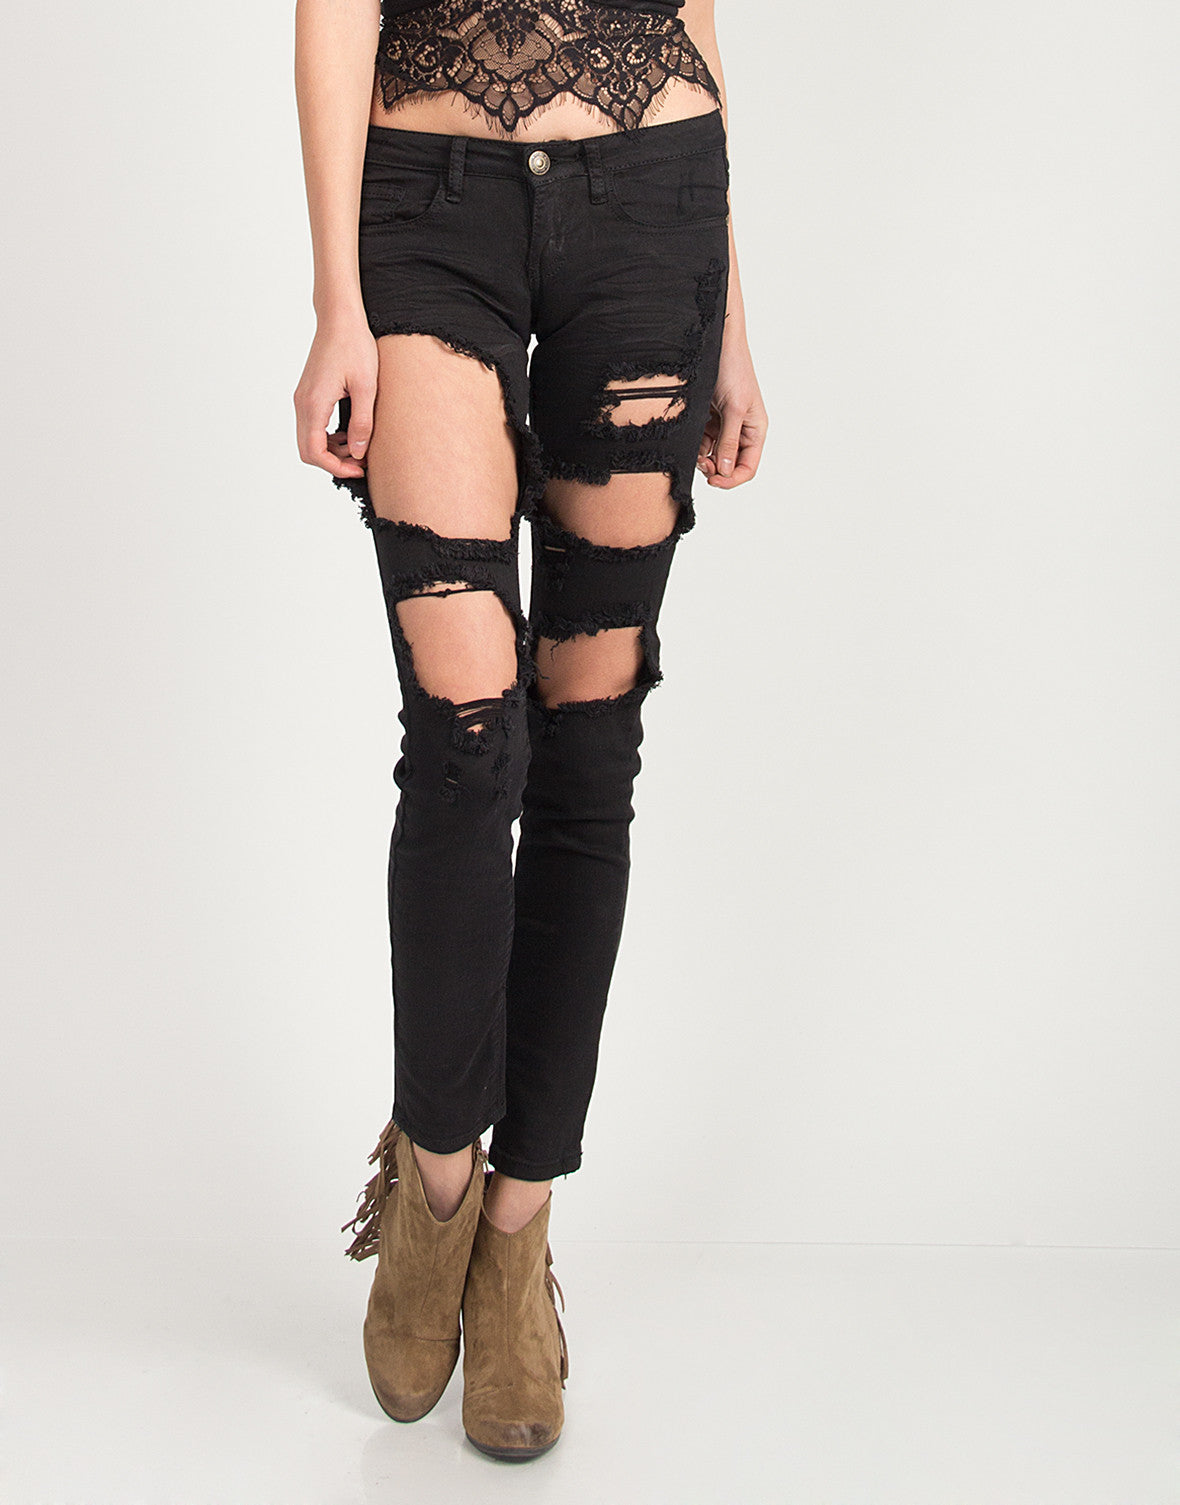 Holey Black Skinny Jeans